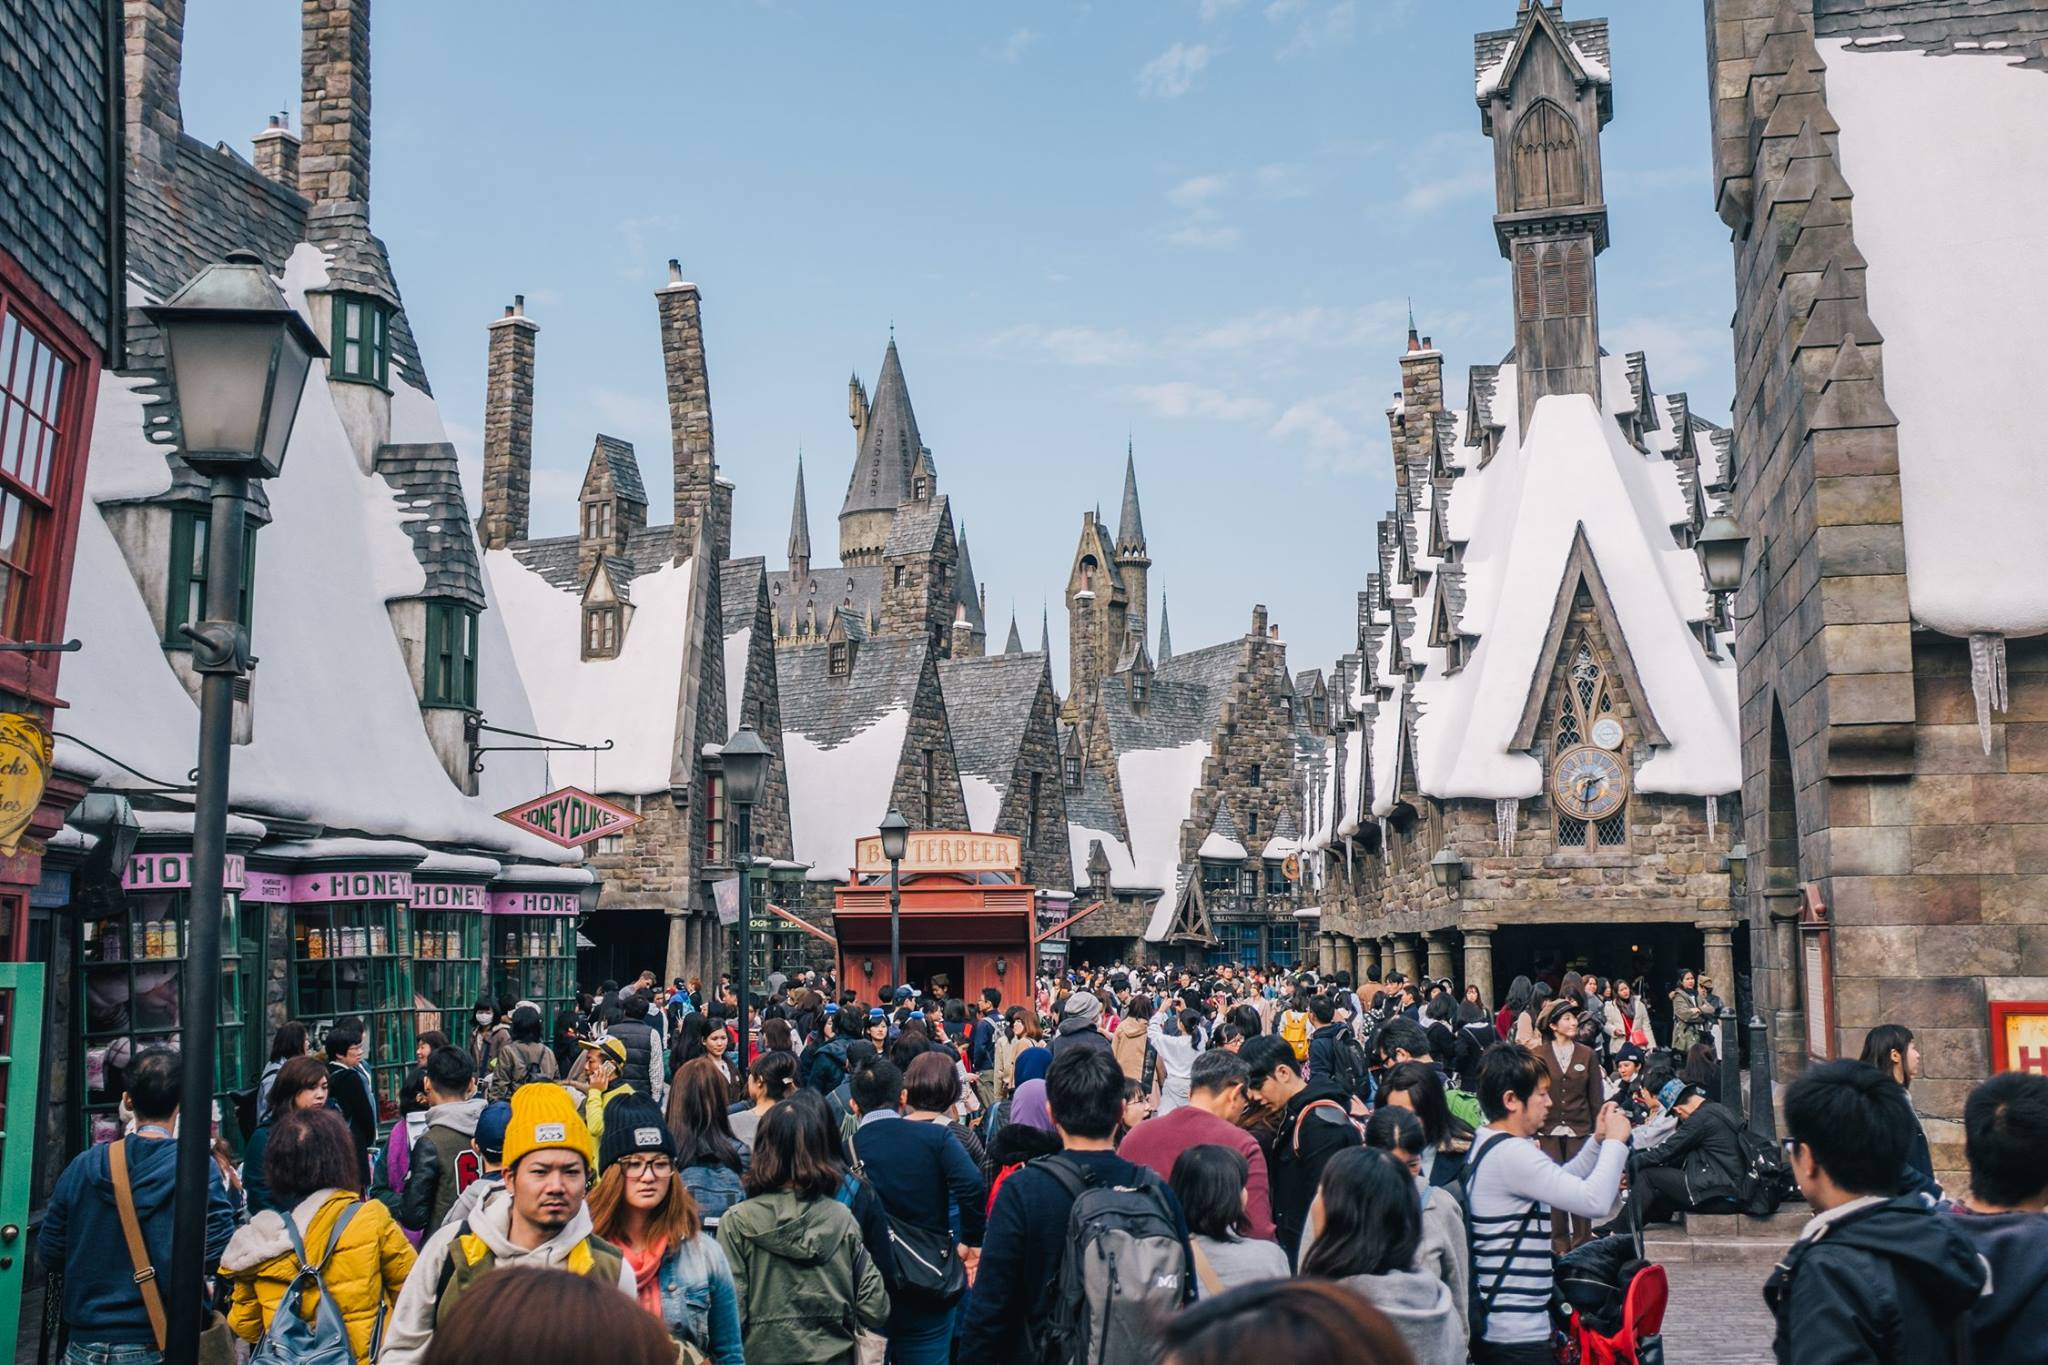 wizarding world of harry potter_maren-hald-bjorgum-10